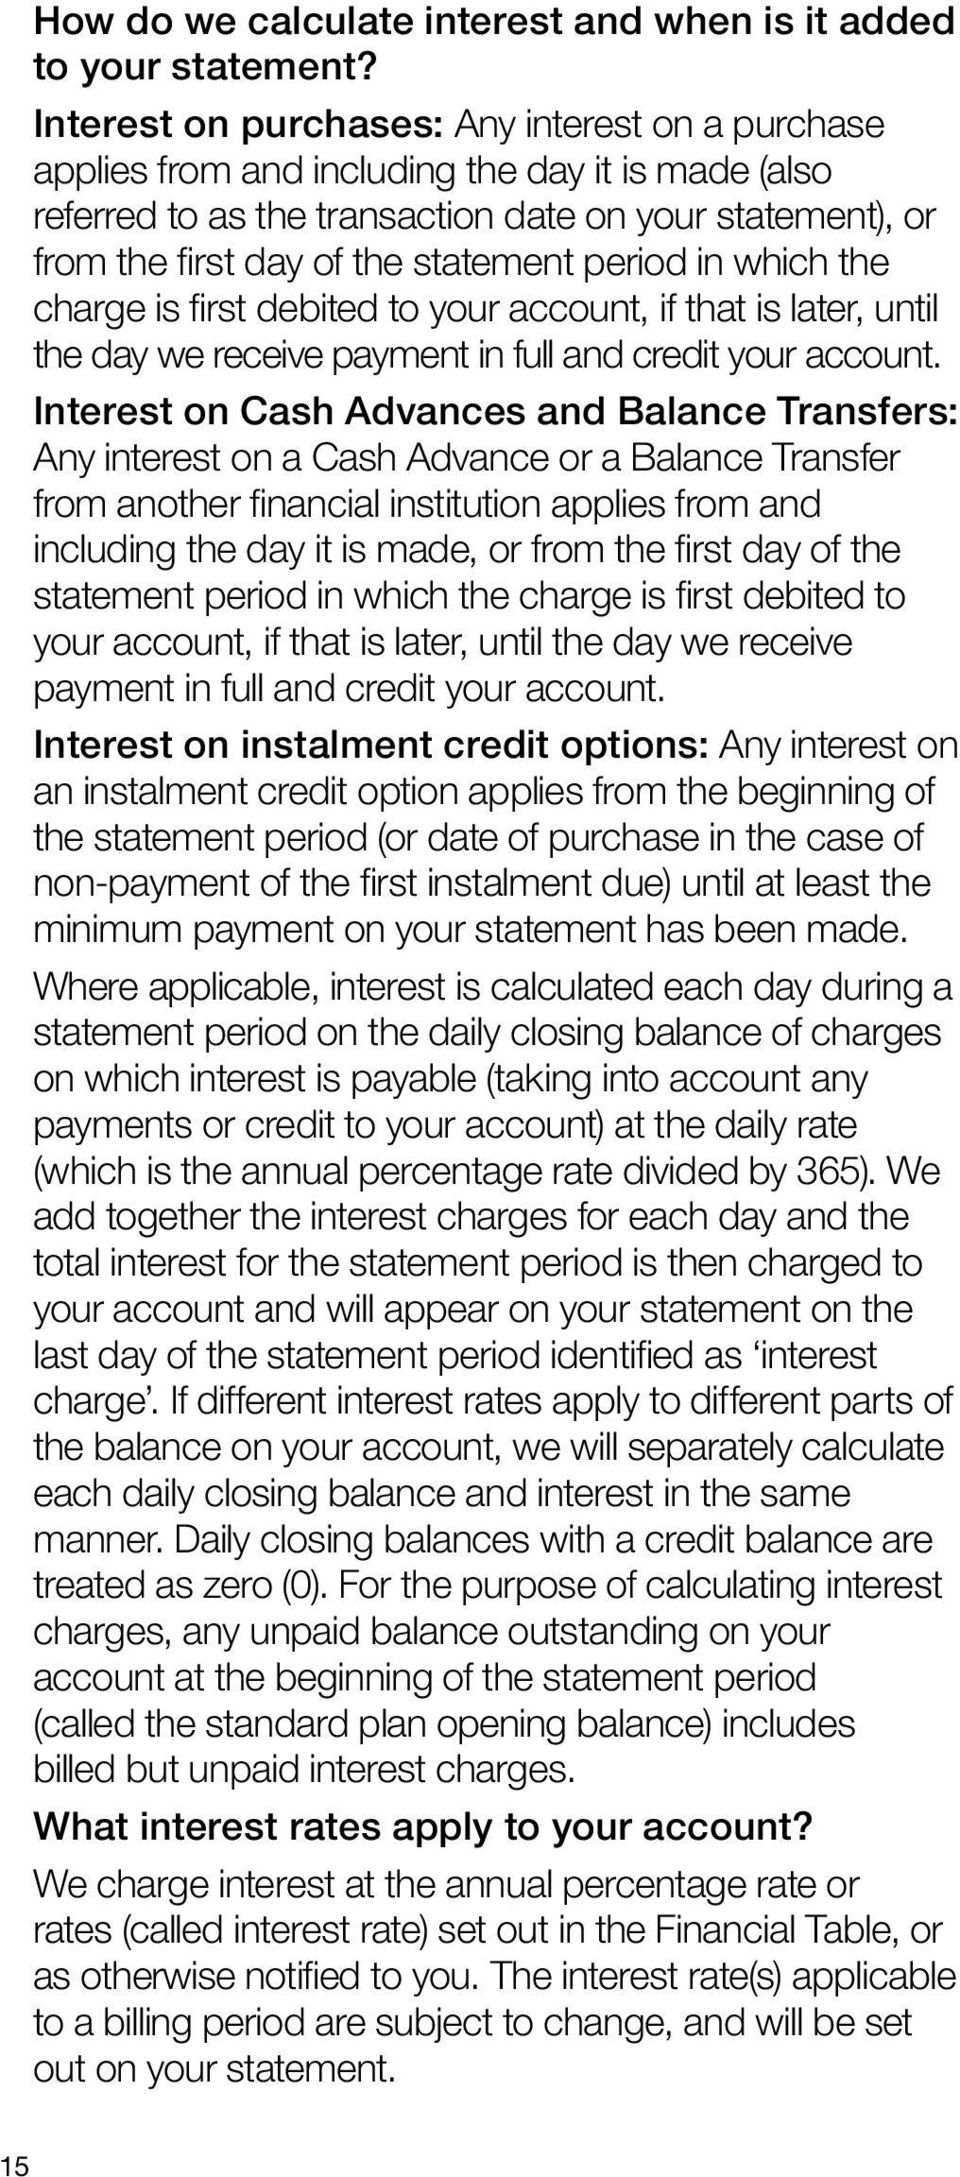 period in which the charge is first debited to your account, if that is later, until the day we receive payment in full and credit your account.